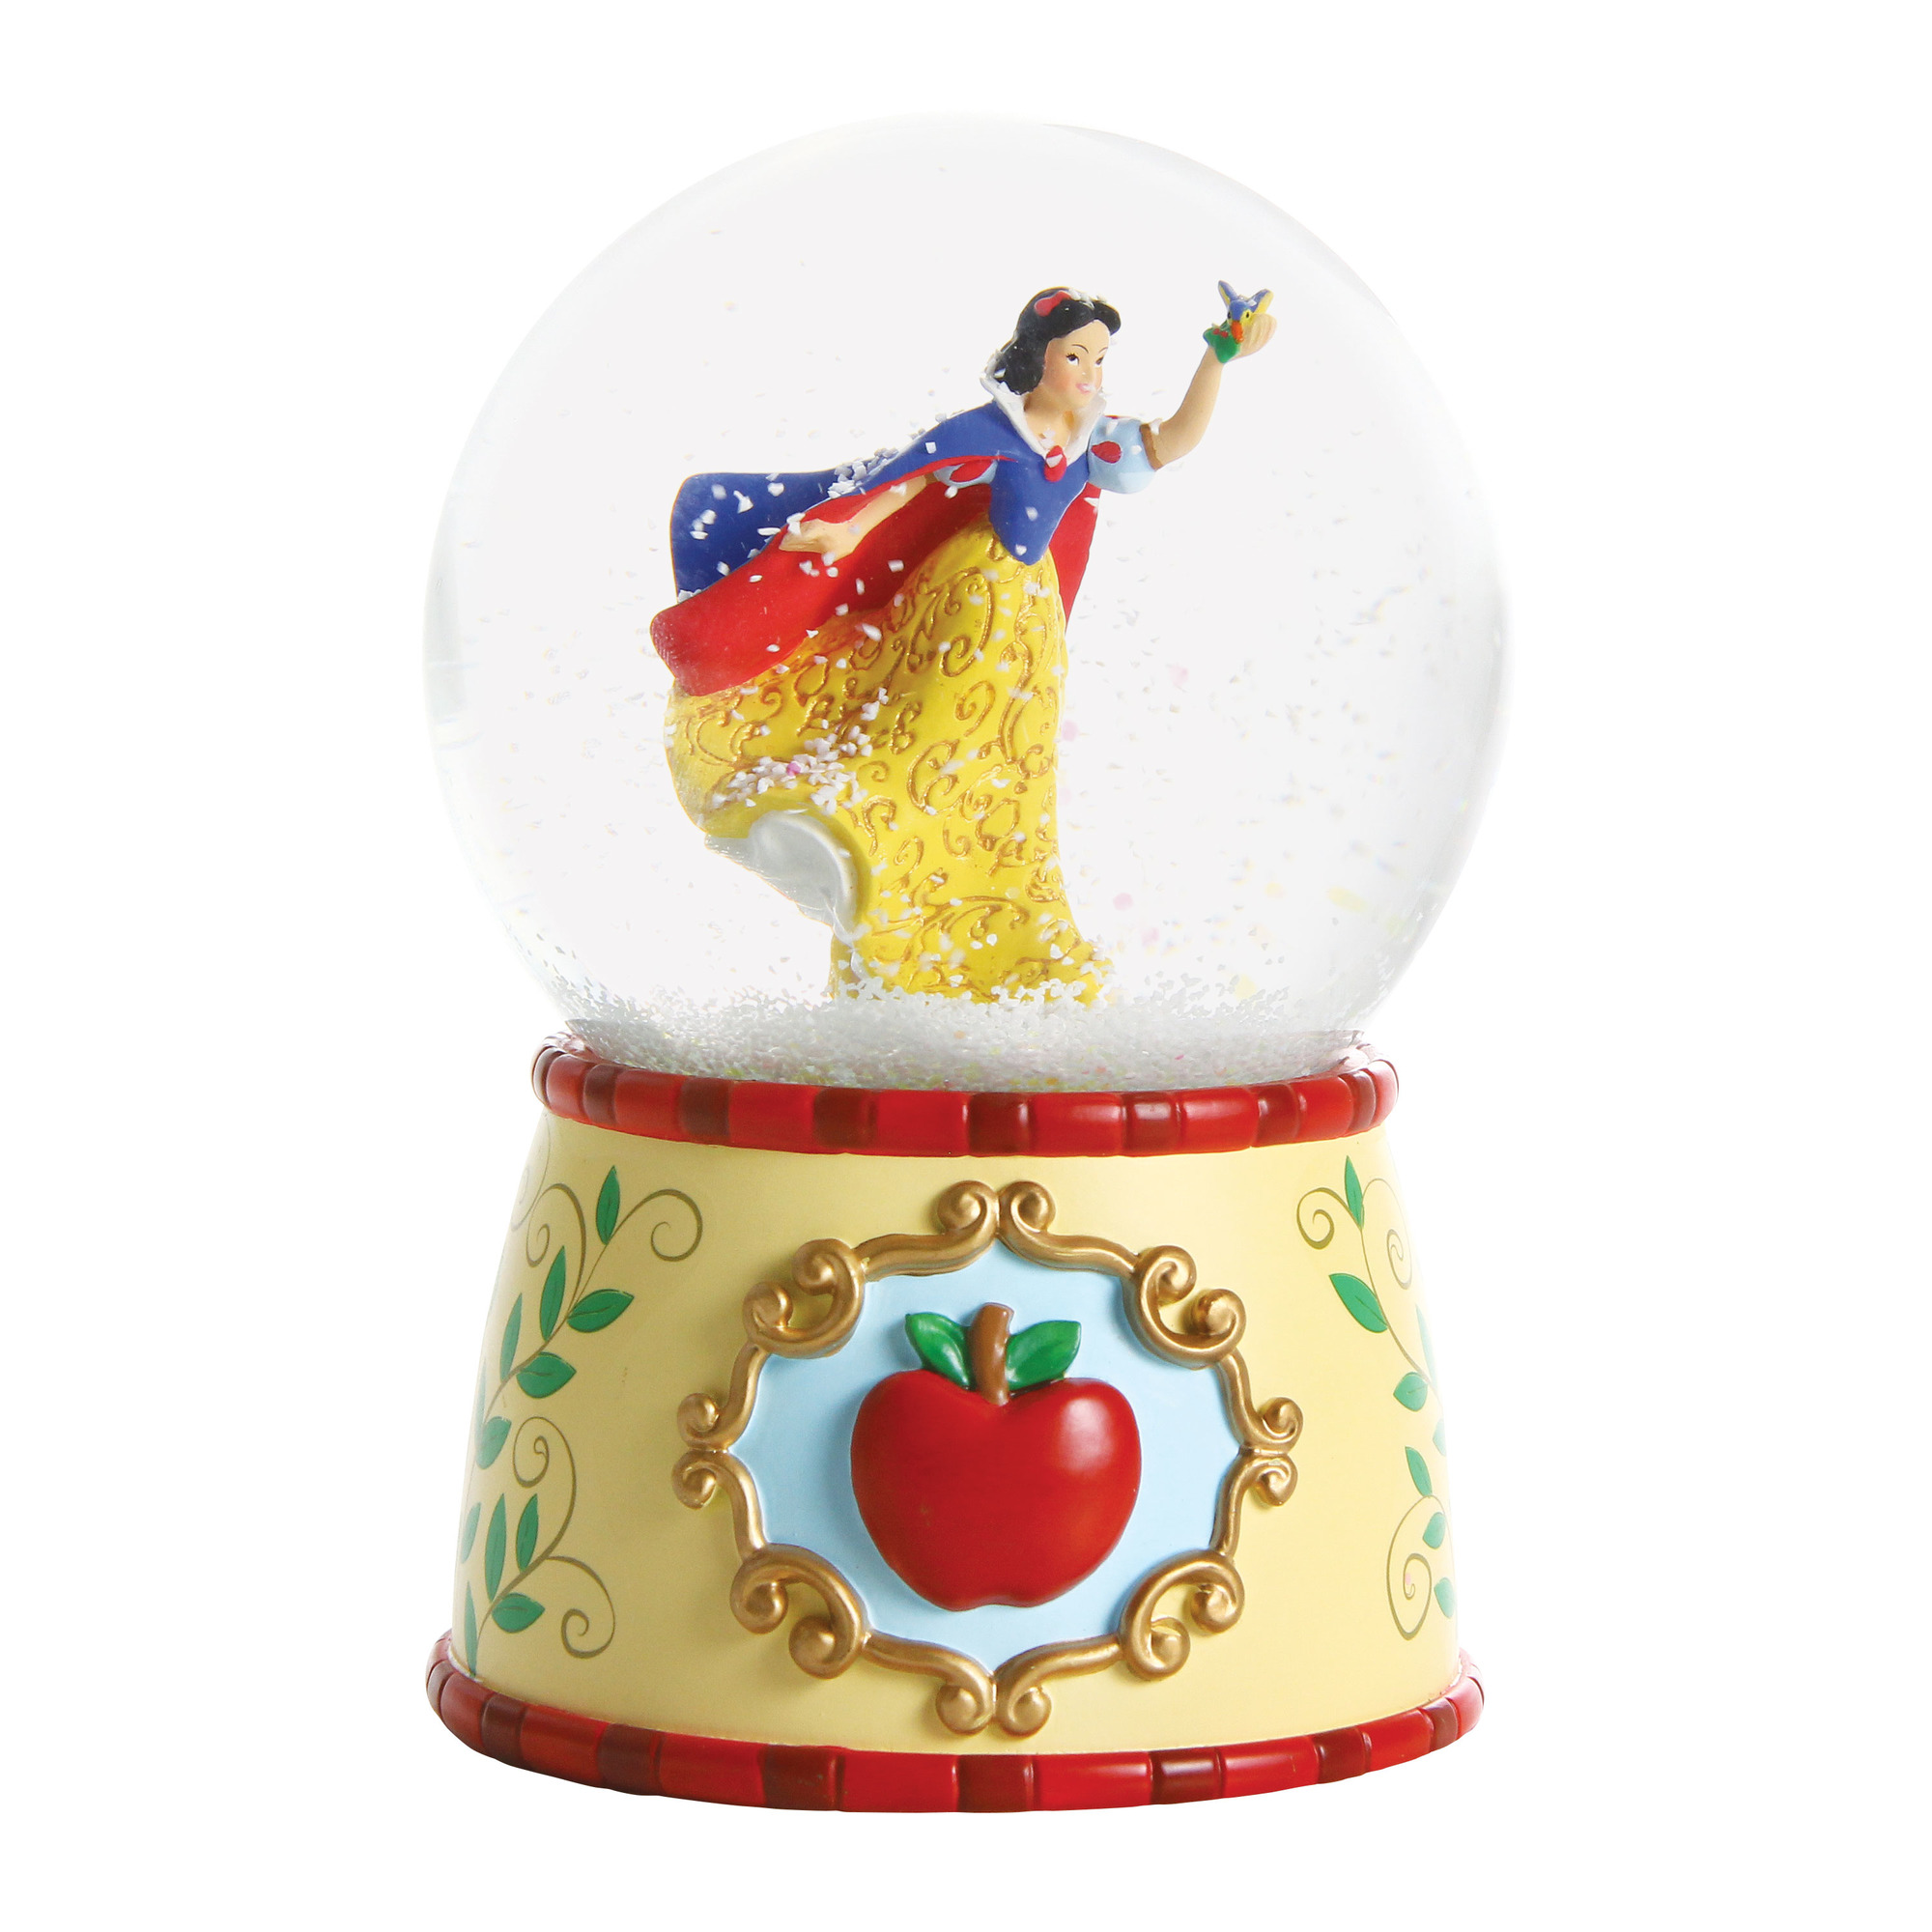 Department 56 Disney Snow White Snow Globe